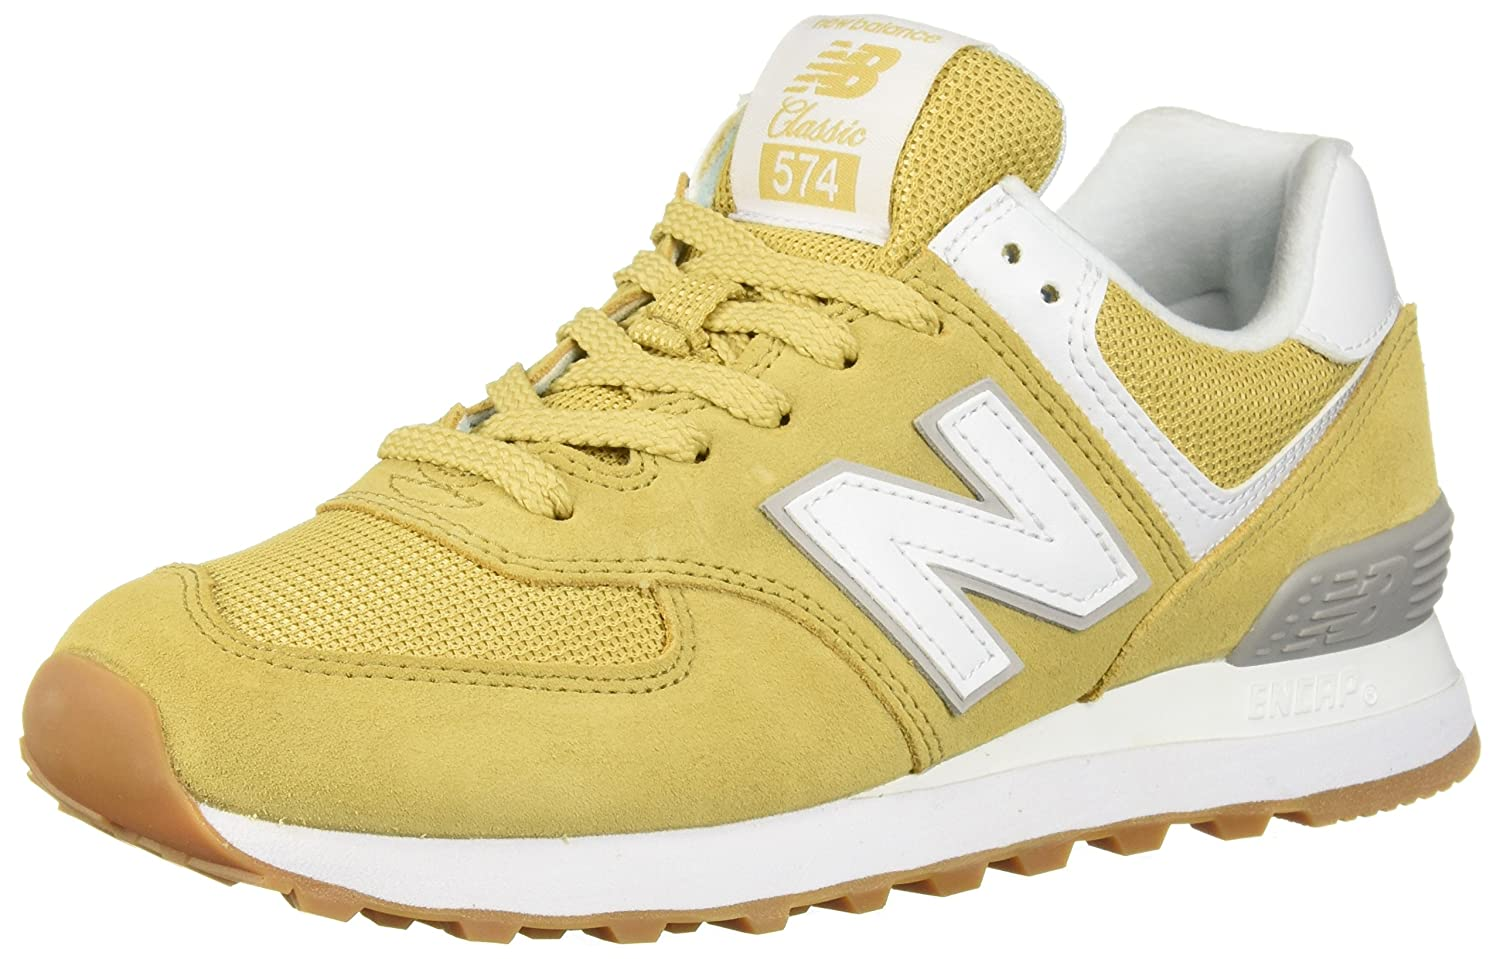 New Balance Wl574v2, Zapatillas para Mujer 40 EU|Beige (Toasted Coconut Est)